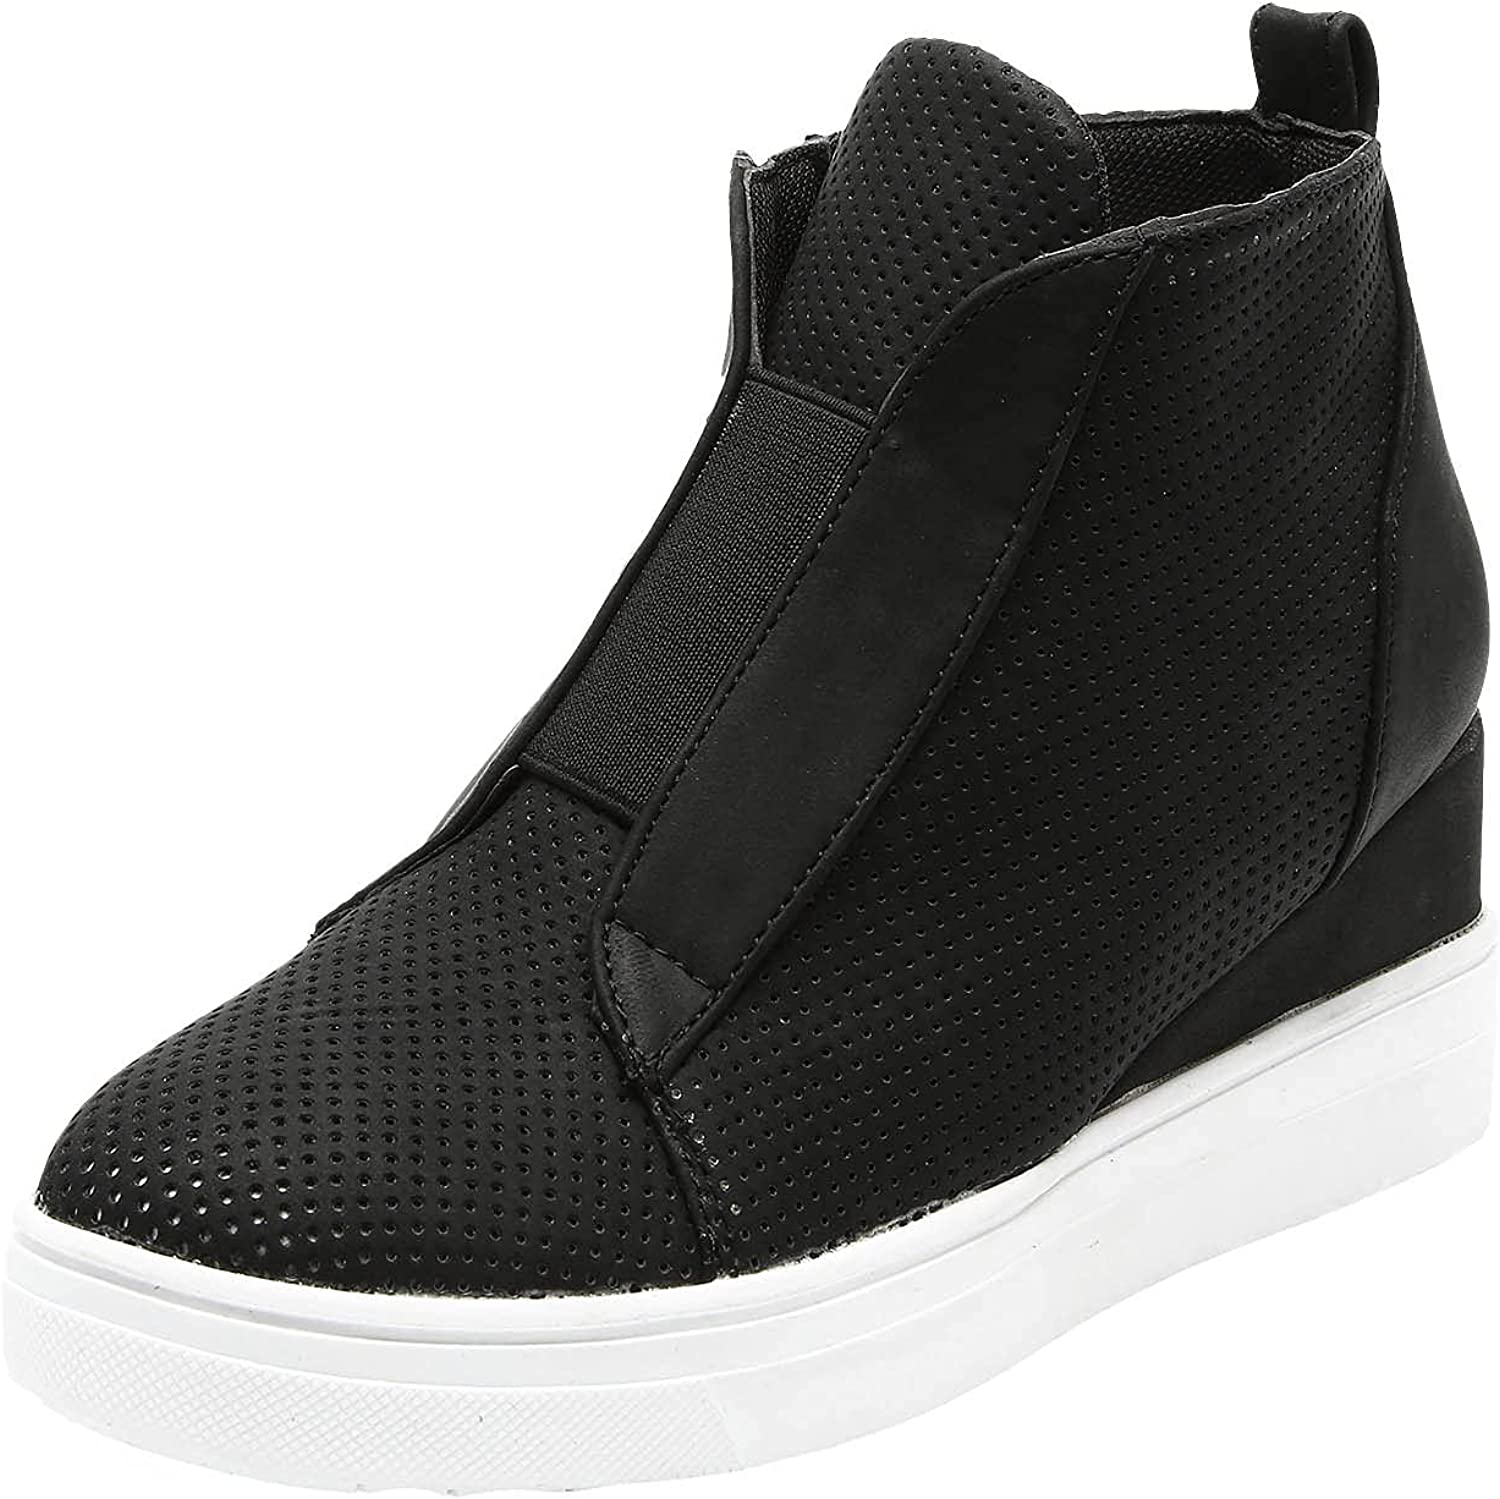 USYFAKGH Wedge Sneakers for Women Hidden Wedges Side Zipper Suede Platform Ankle Booties Fashion Casual High Top Sneakers